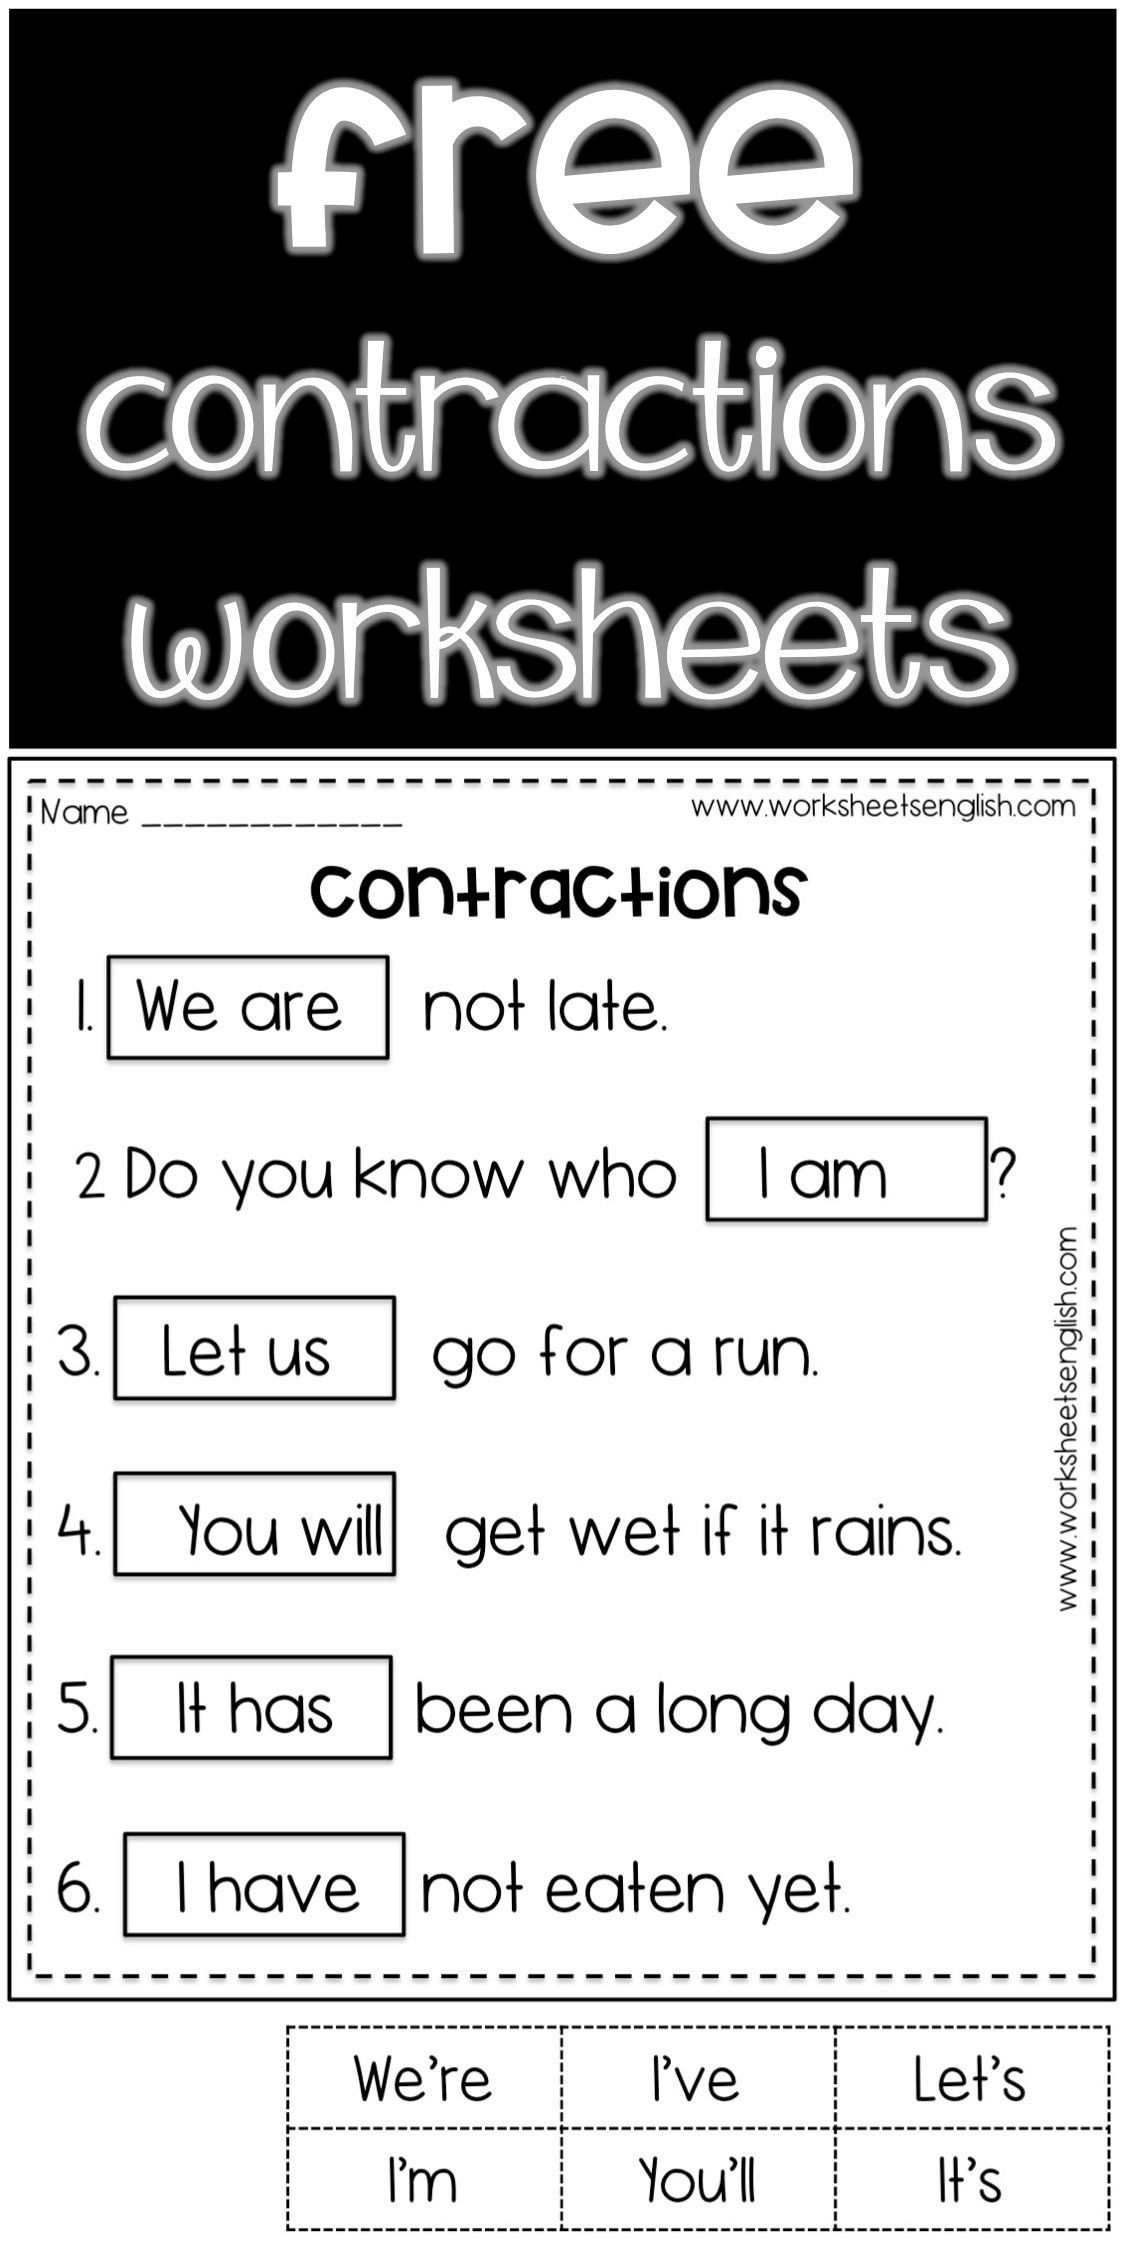 hight resolution of contractions in english FREE www.worksheetsenglish.com in 2021   Contraction  worksheet